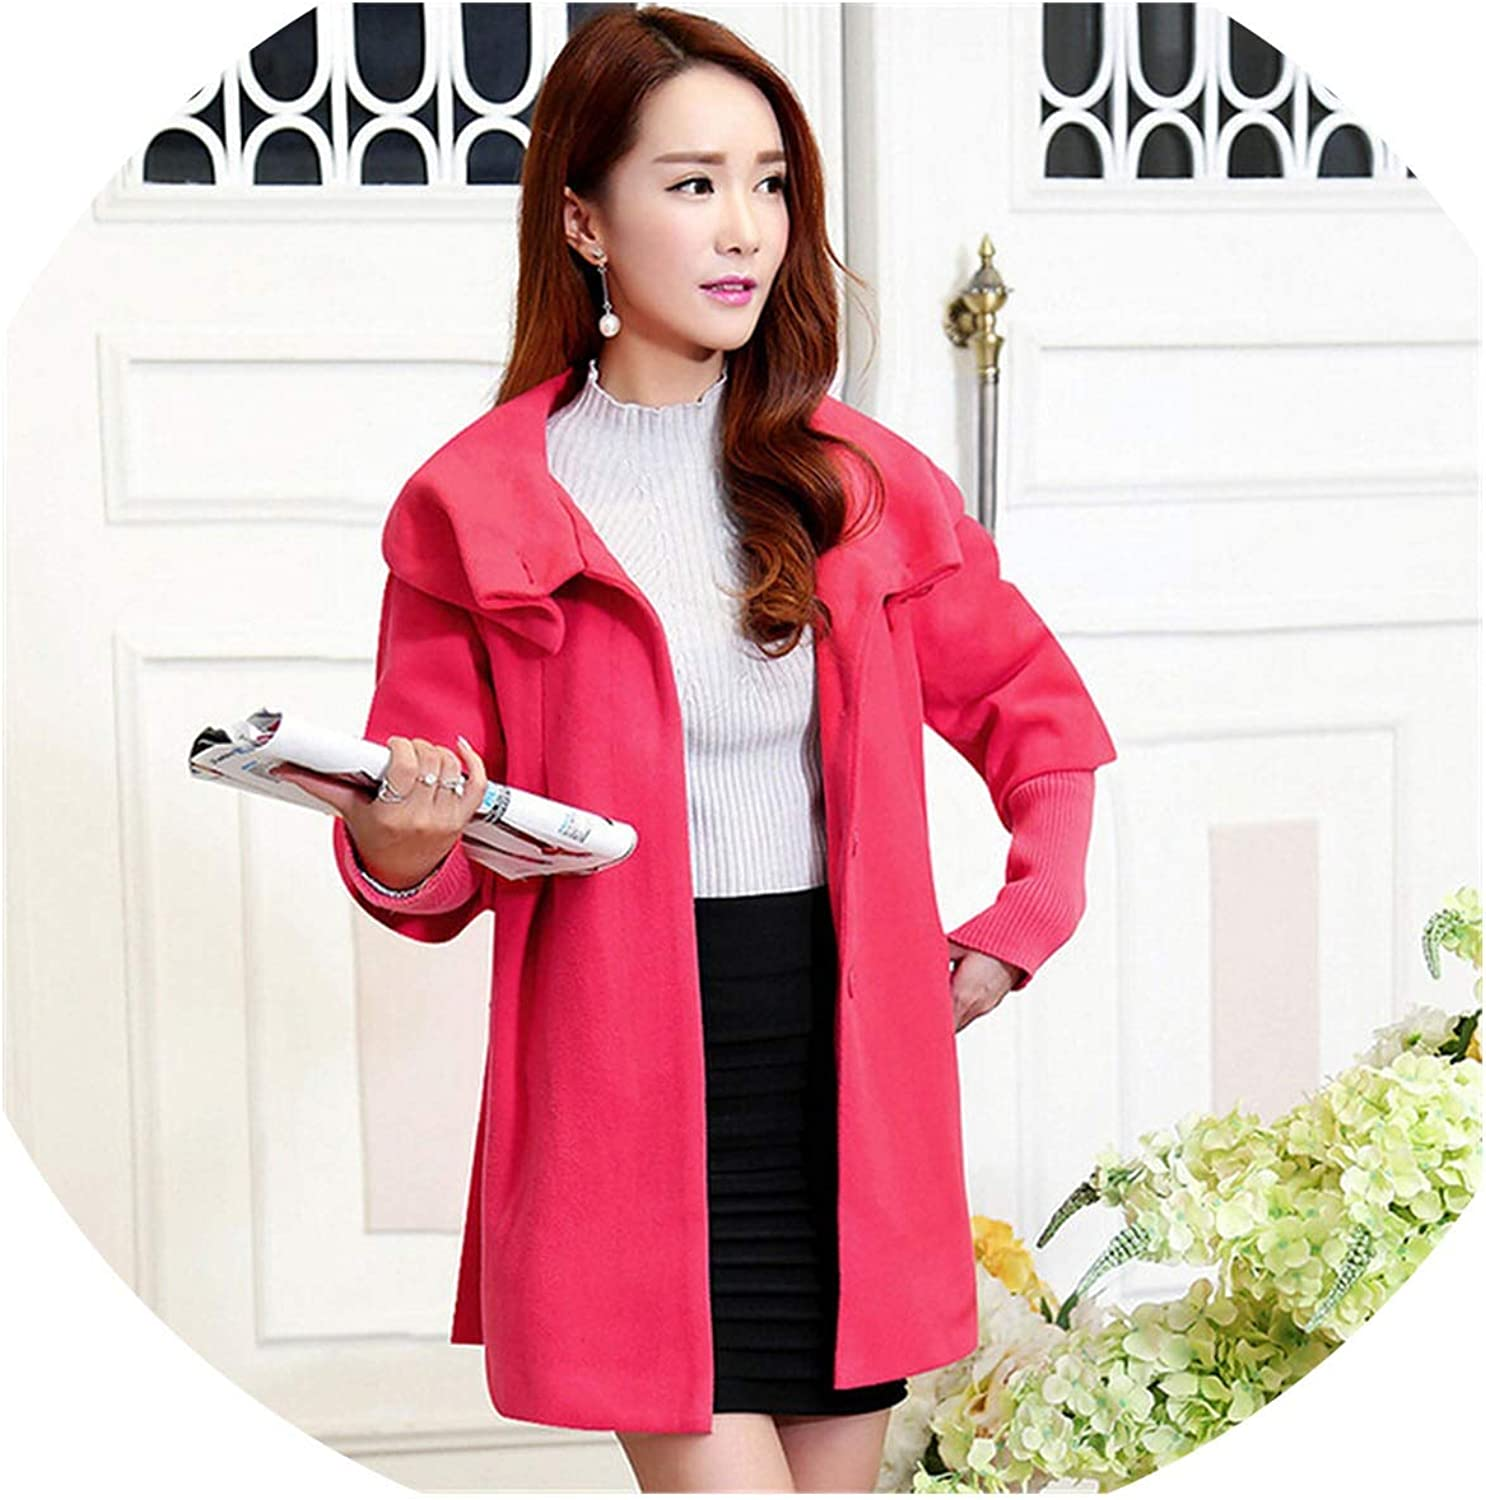 2019 Women's Spring Autumn Winter Maternity Coat Casual Solid Warm Jackets Coats